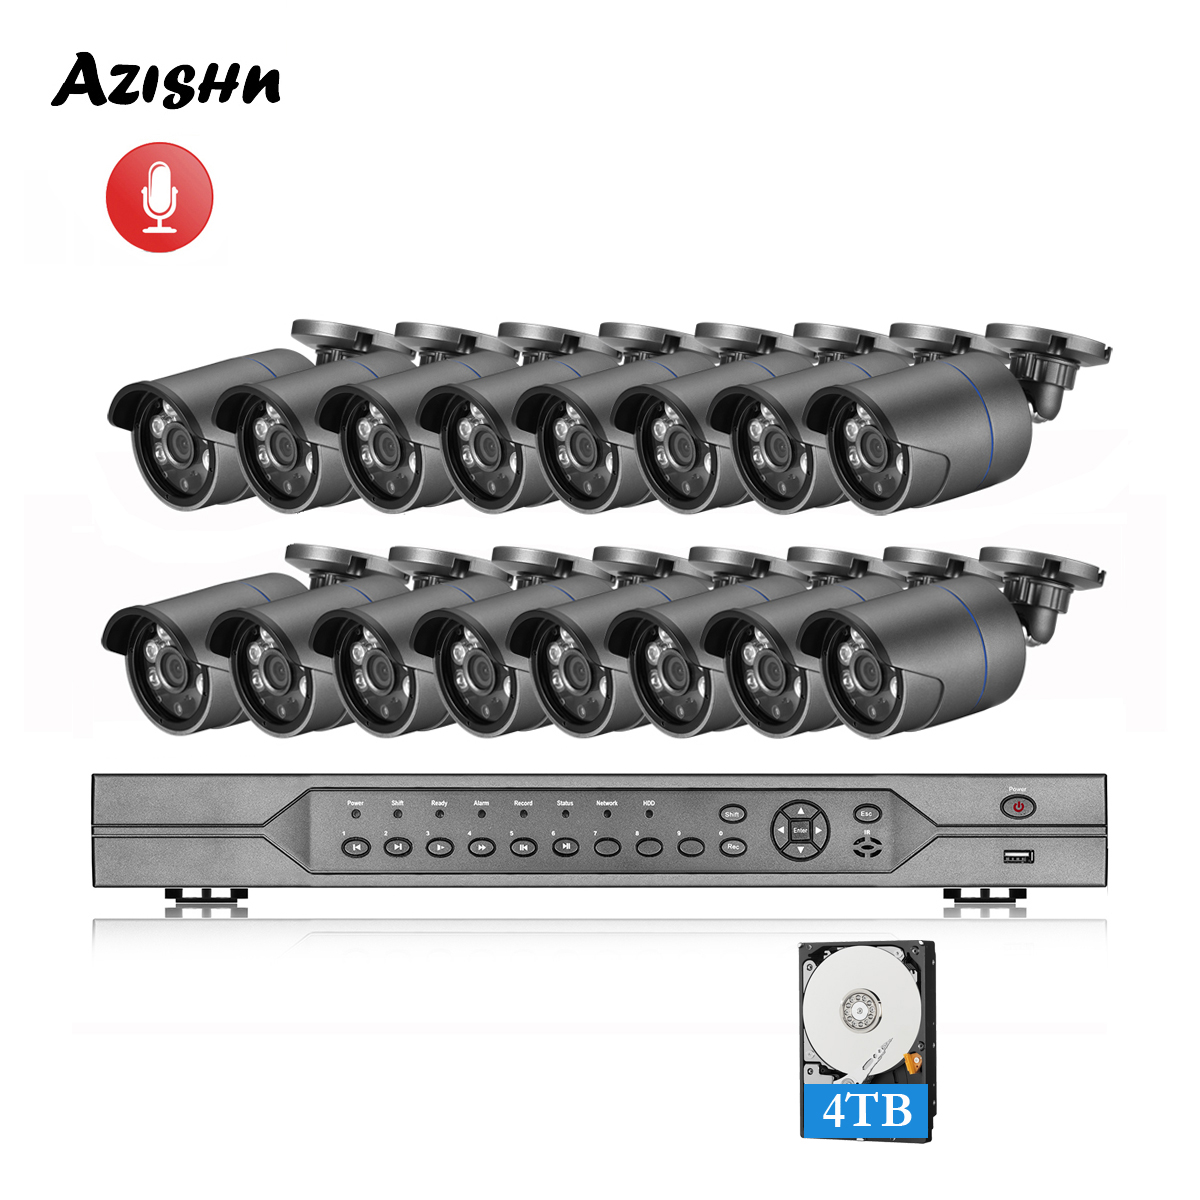 "AZISHN 16CH 5MP POE NVR Kit H.265 CCTV Security System Waterproof  5MP 1/2.8"" Sony IMX335 IP Camera P2P Video Surveillance Set"